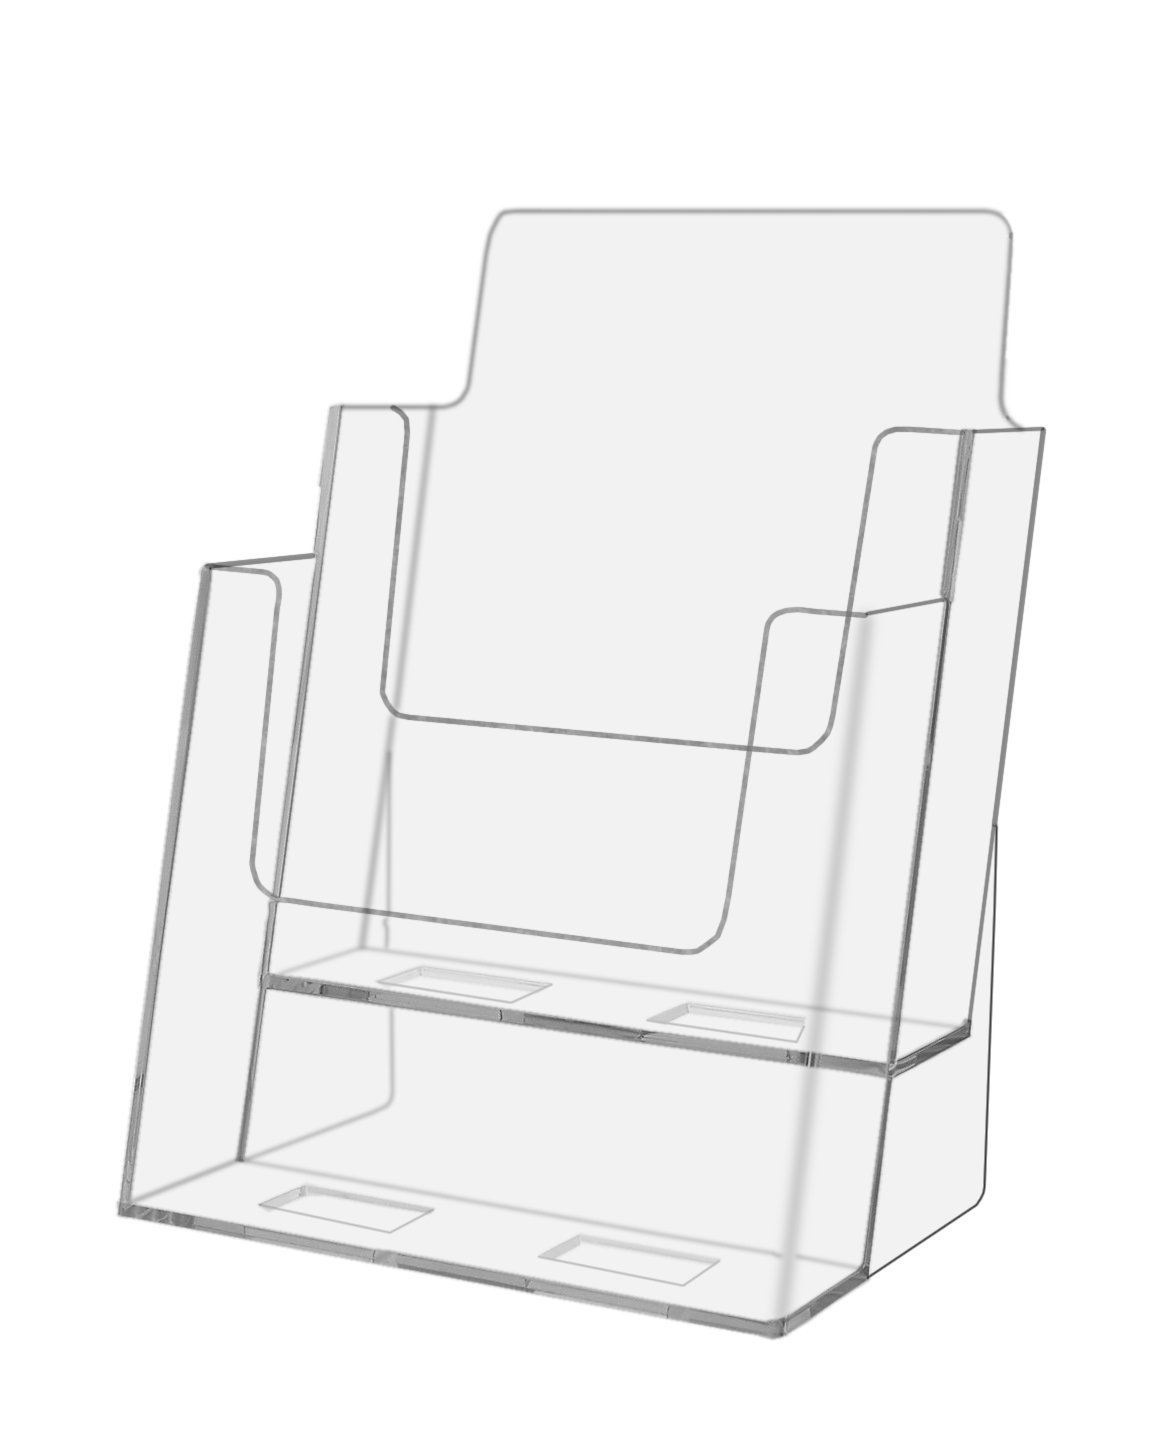 Marketing Holders Clear Acrylic 2 Pocket, Tiered Desktop Brochure Holder for 6 Inch Wide Literature, Product Catalogs and Bi-fold Brochures (Pack of 48)